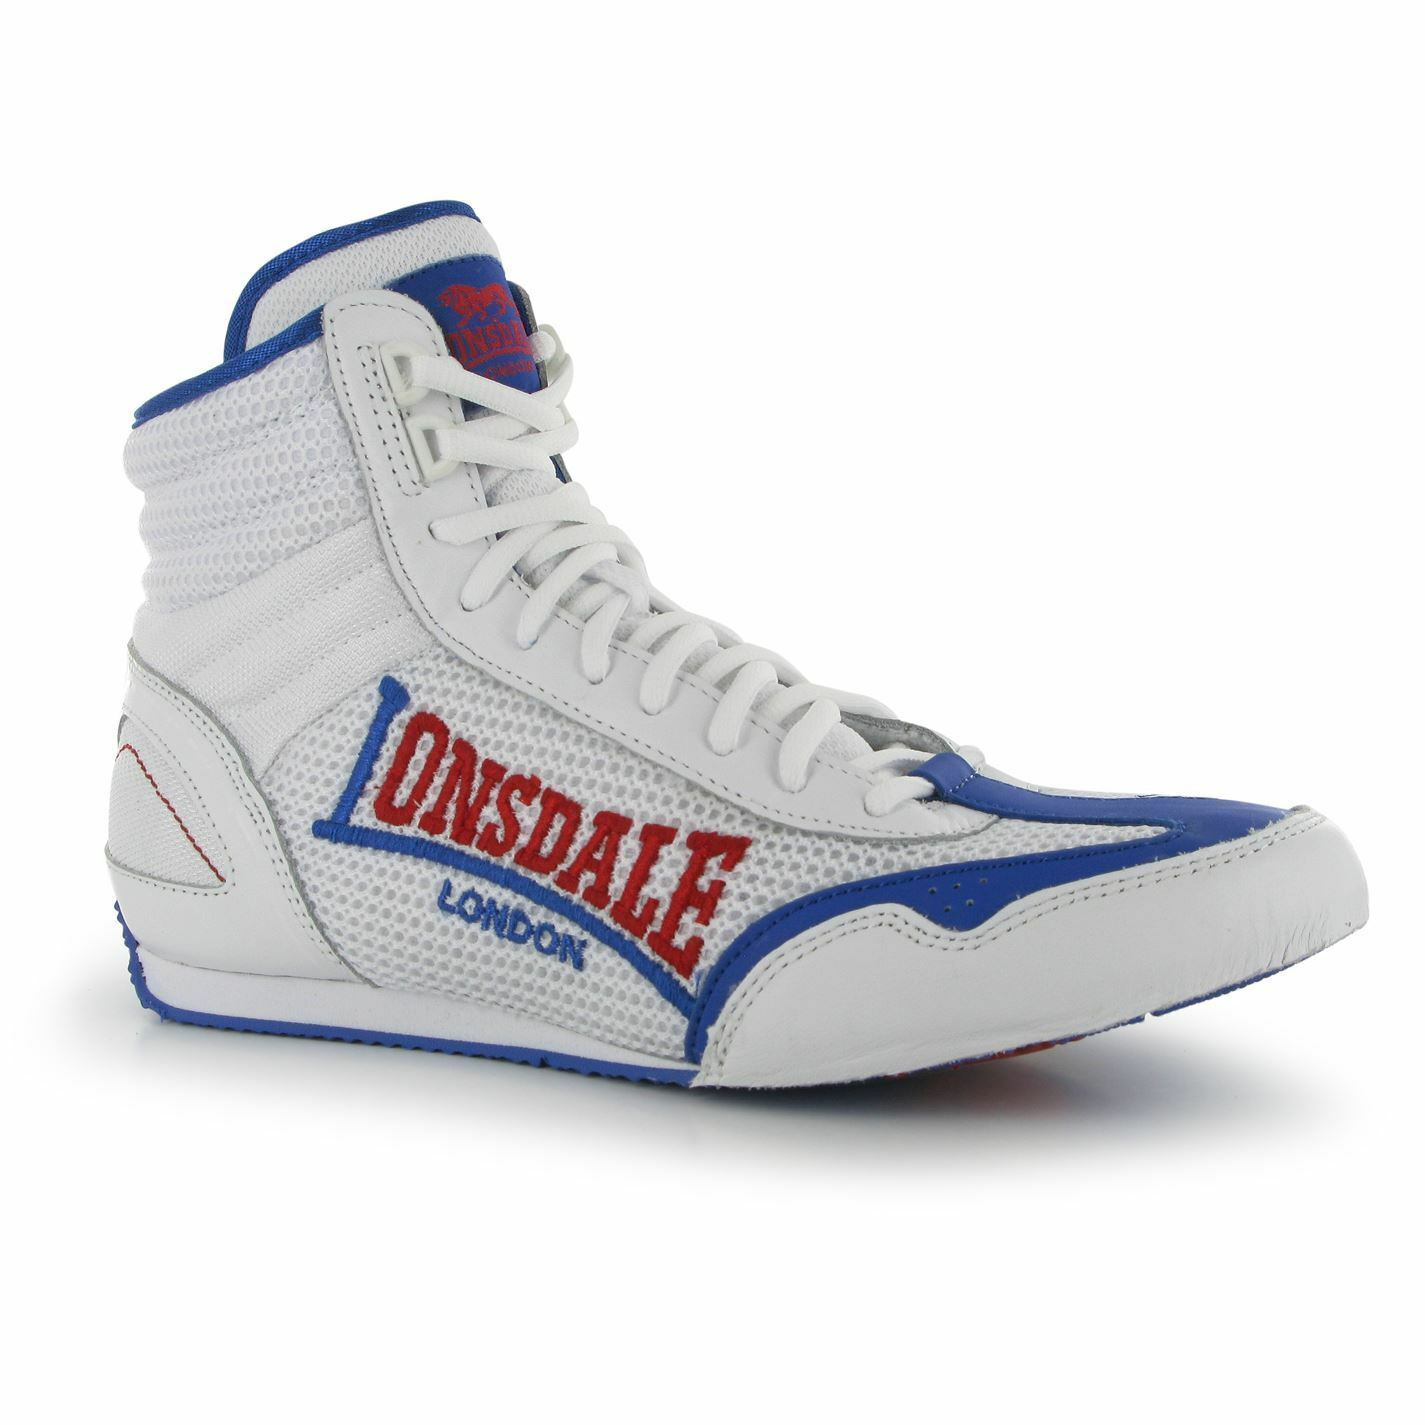 Lonsdale Contender Boxing Boots Mens White blueee Trainers Sneakers Gym shoes